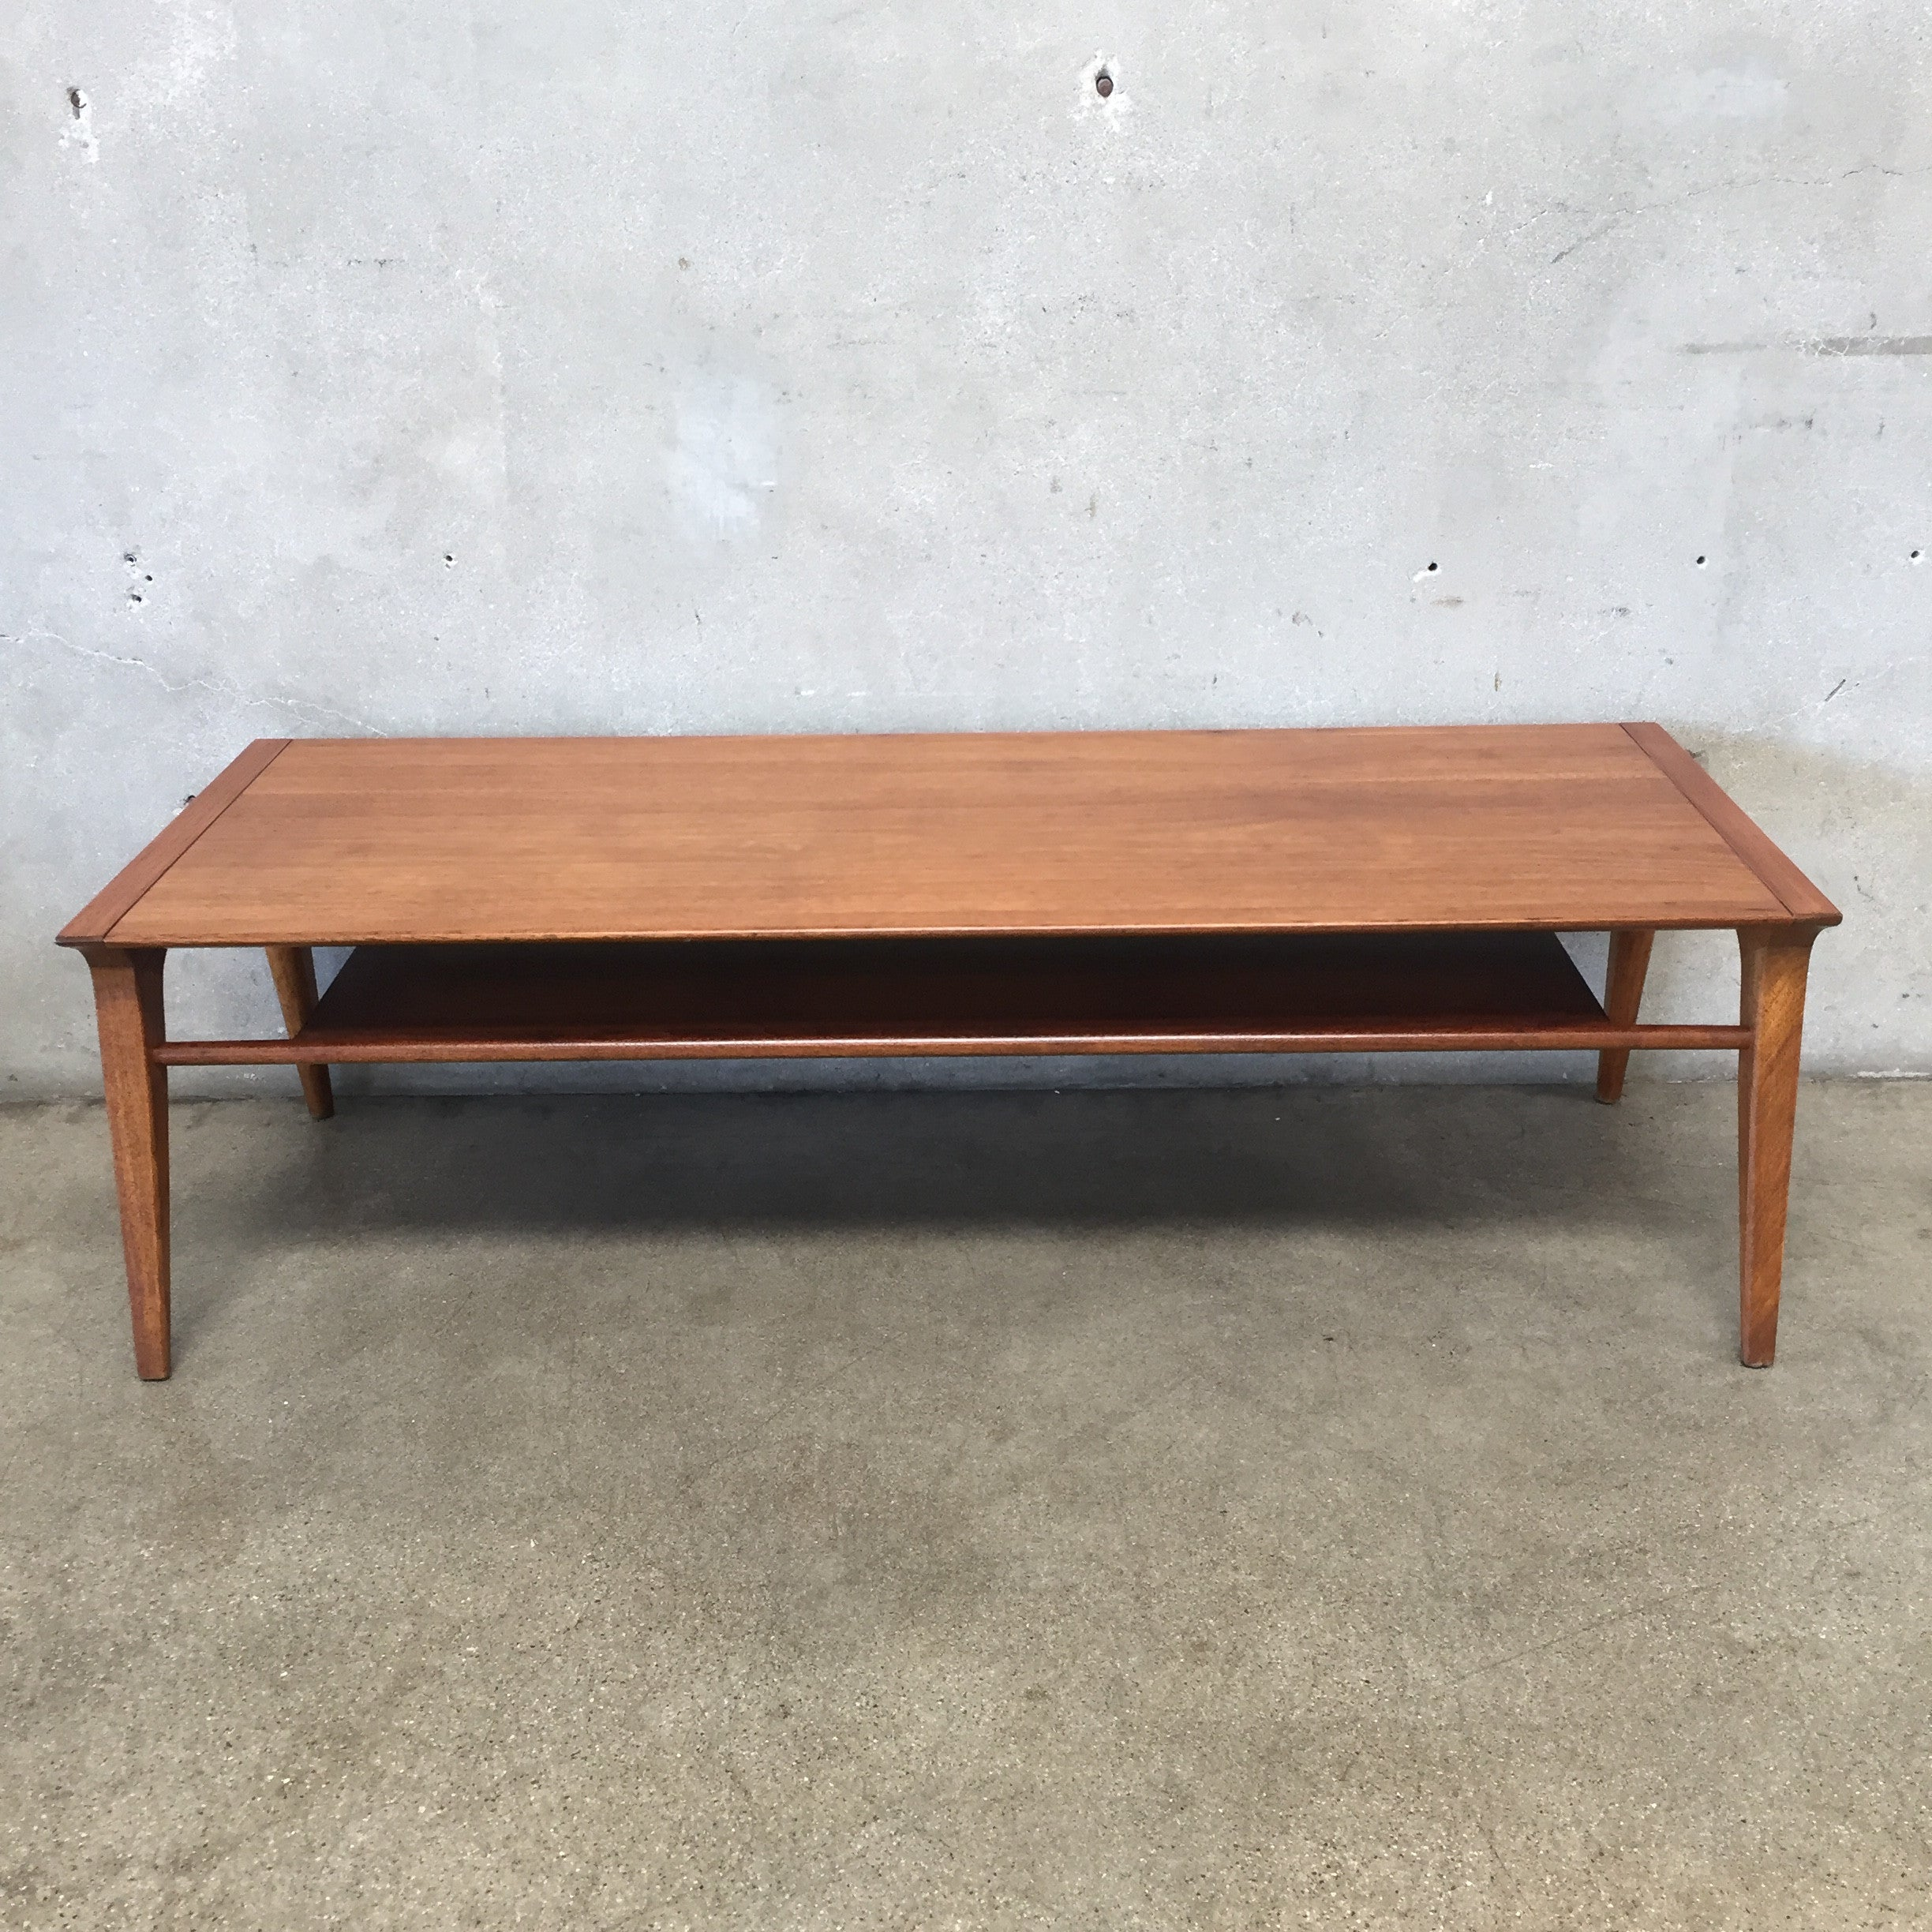 Walnut drexel profile coffee table by john van koert urbanamericana walnut drexel profile coffee table by john van koert geotapseo Image collections